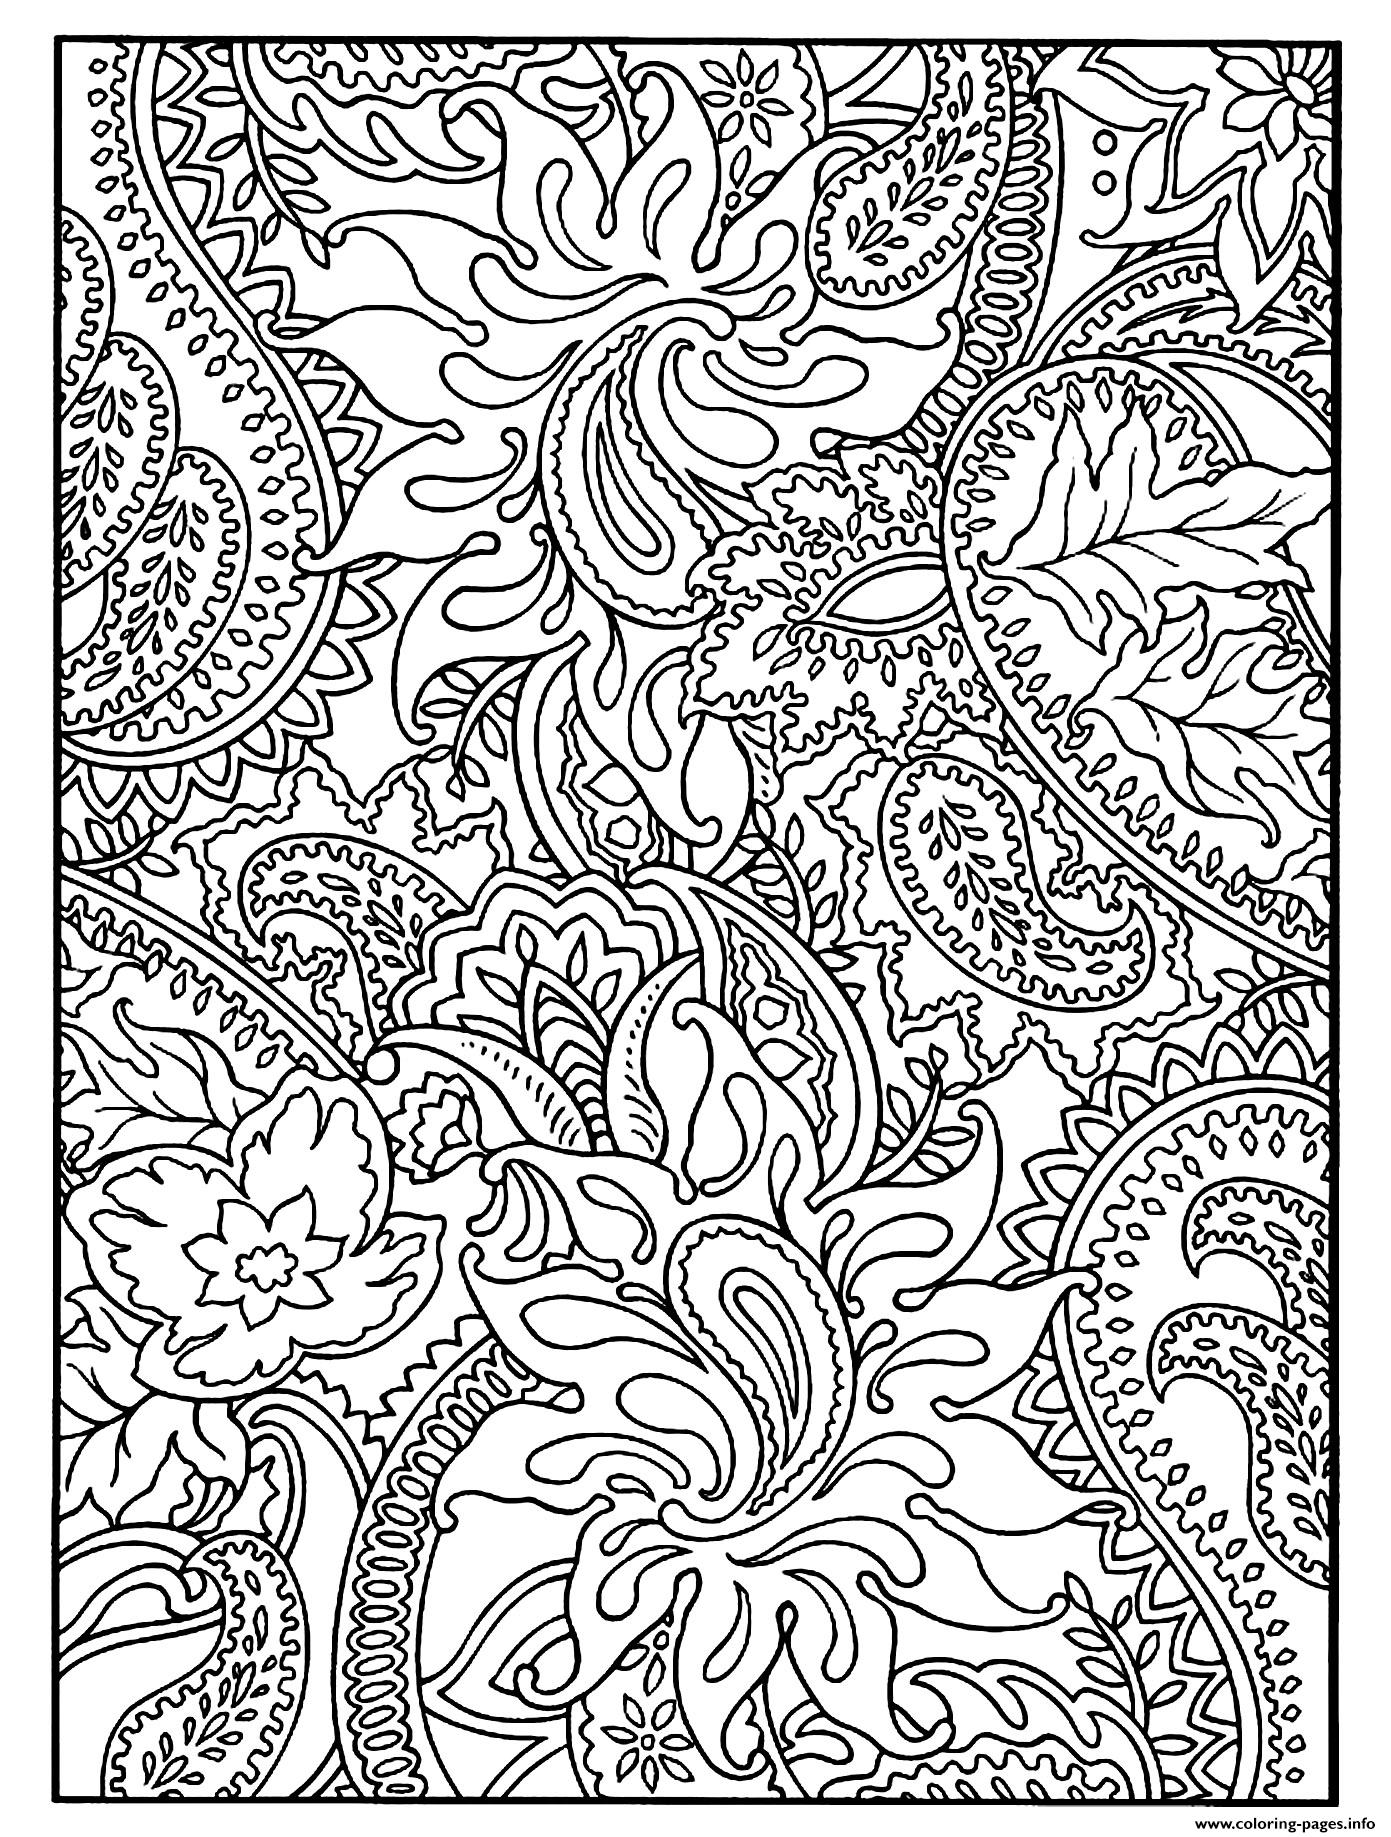 Flowers And Harmonious Paisley Patterns Coloring Pages Printable